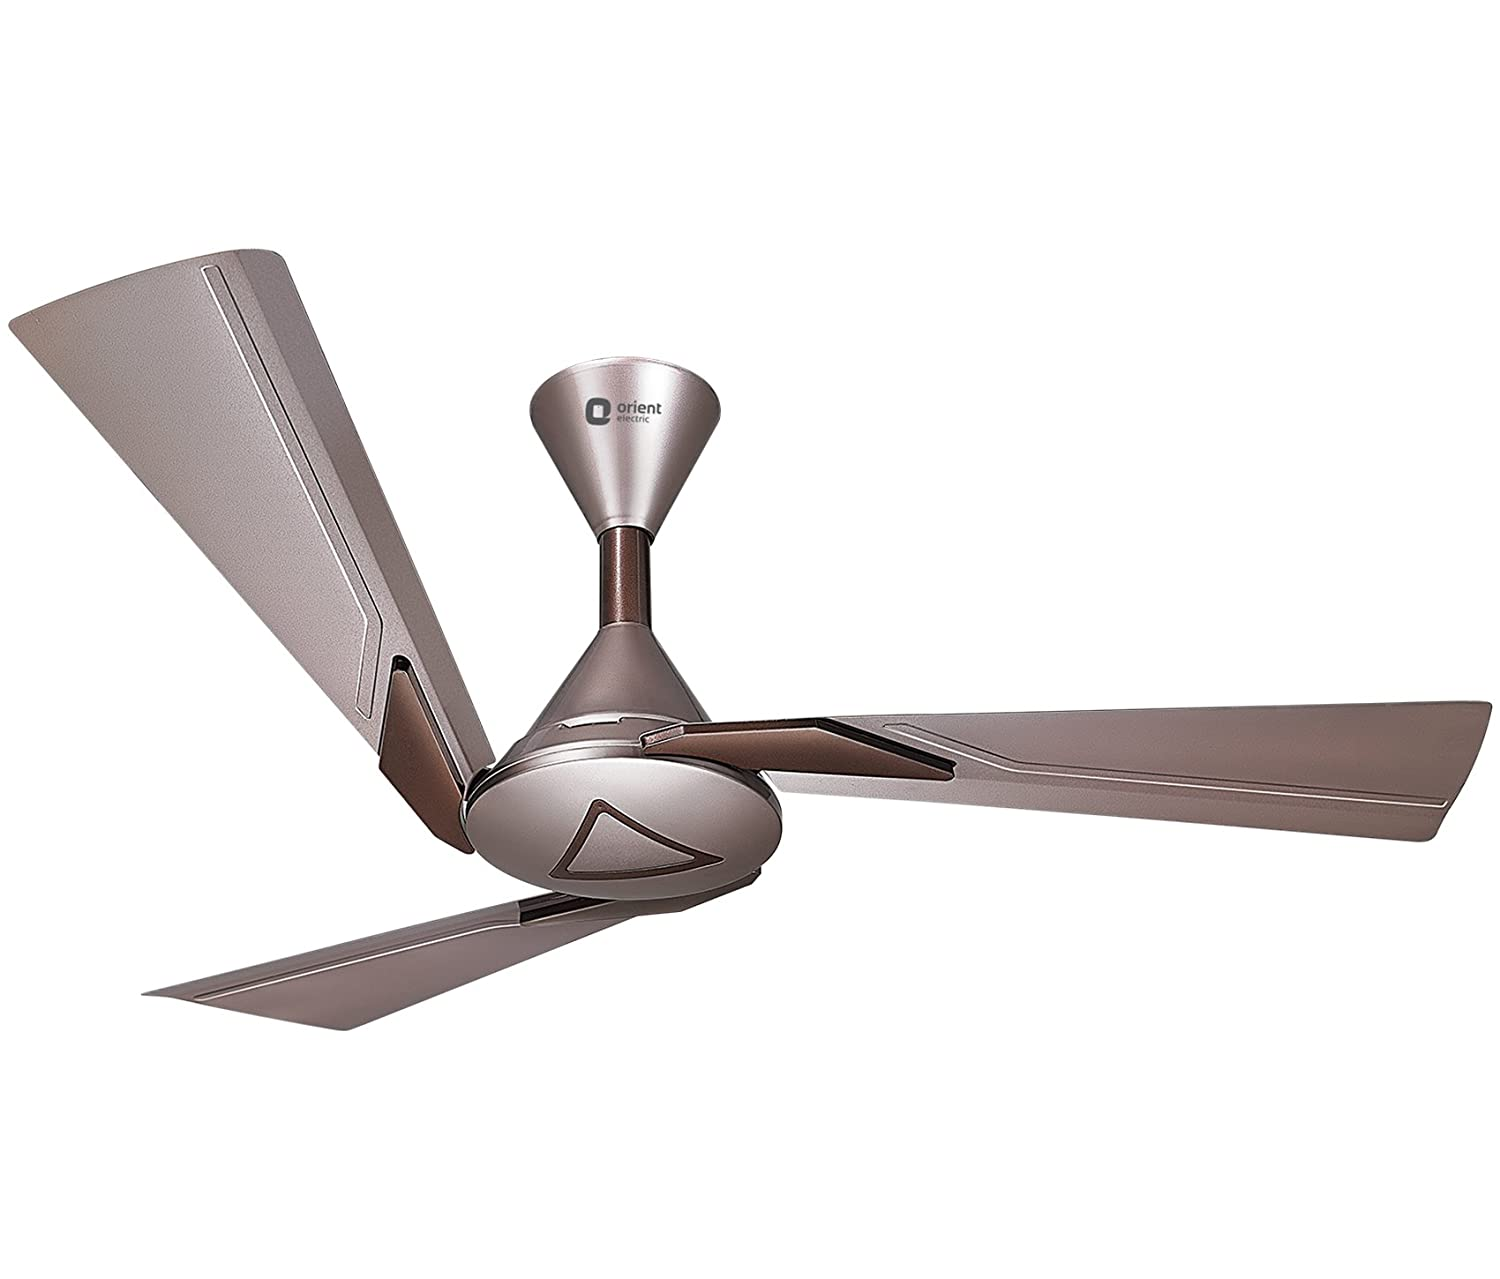 Buy orient electric orina 48 ceiling fan copper brown 48 1200mm buy orient electric orina 48 ceiling fan copper brown 48 1200mm online at low prices in india amazon aloadofball Image collections